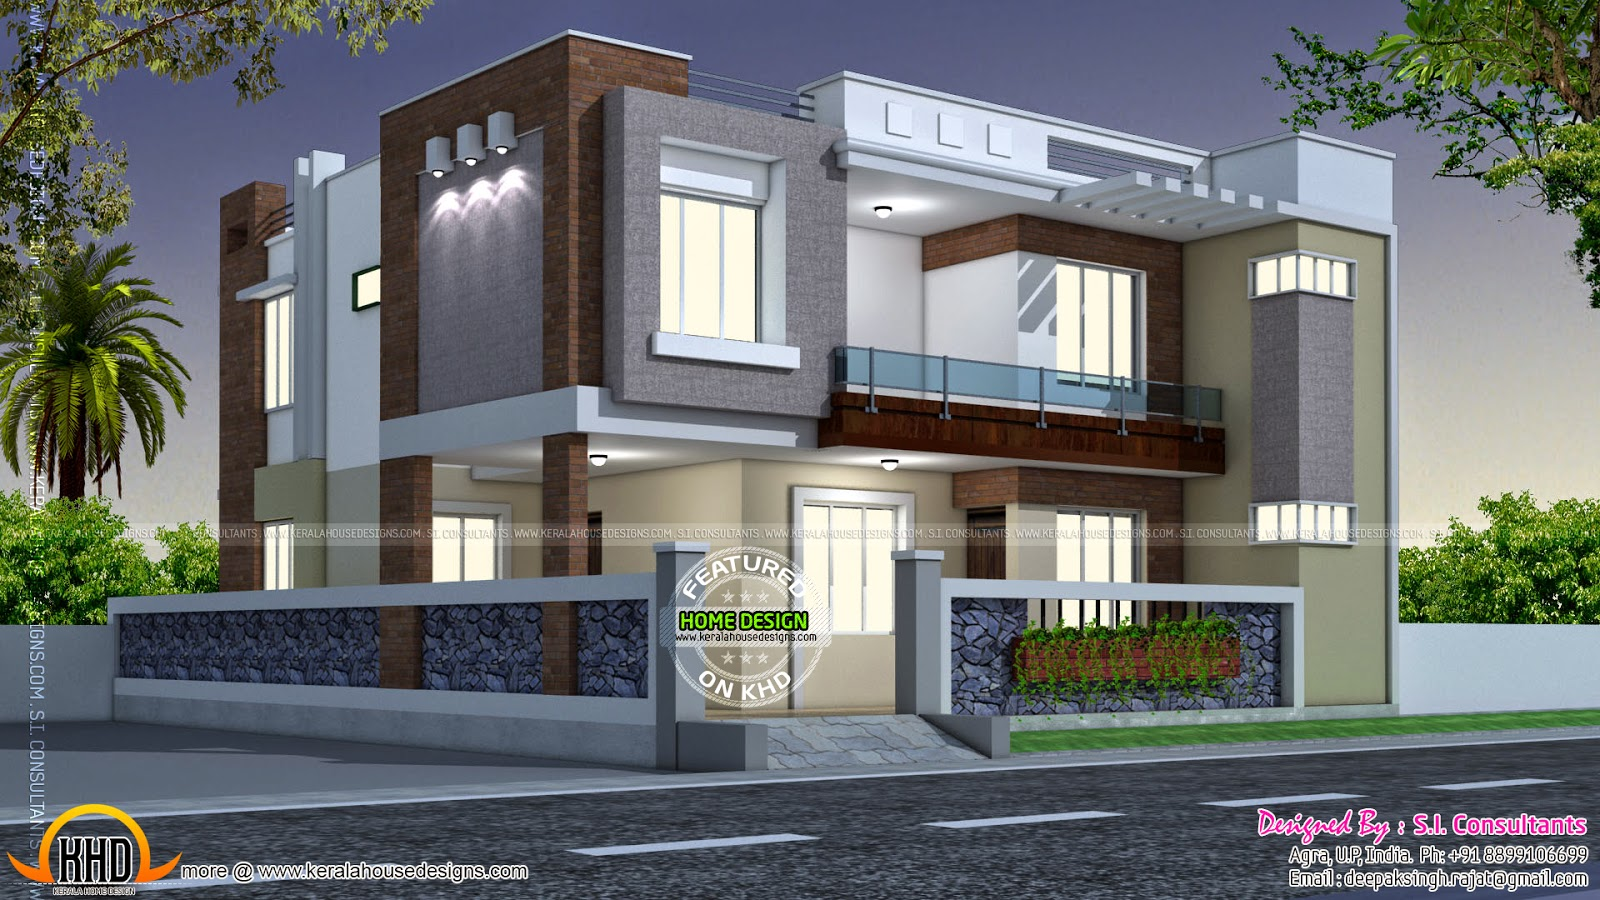 House plans and design modern house plans for india for Arch design indian home plans